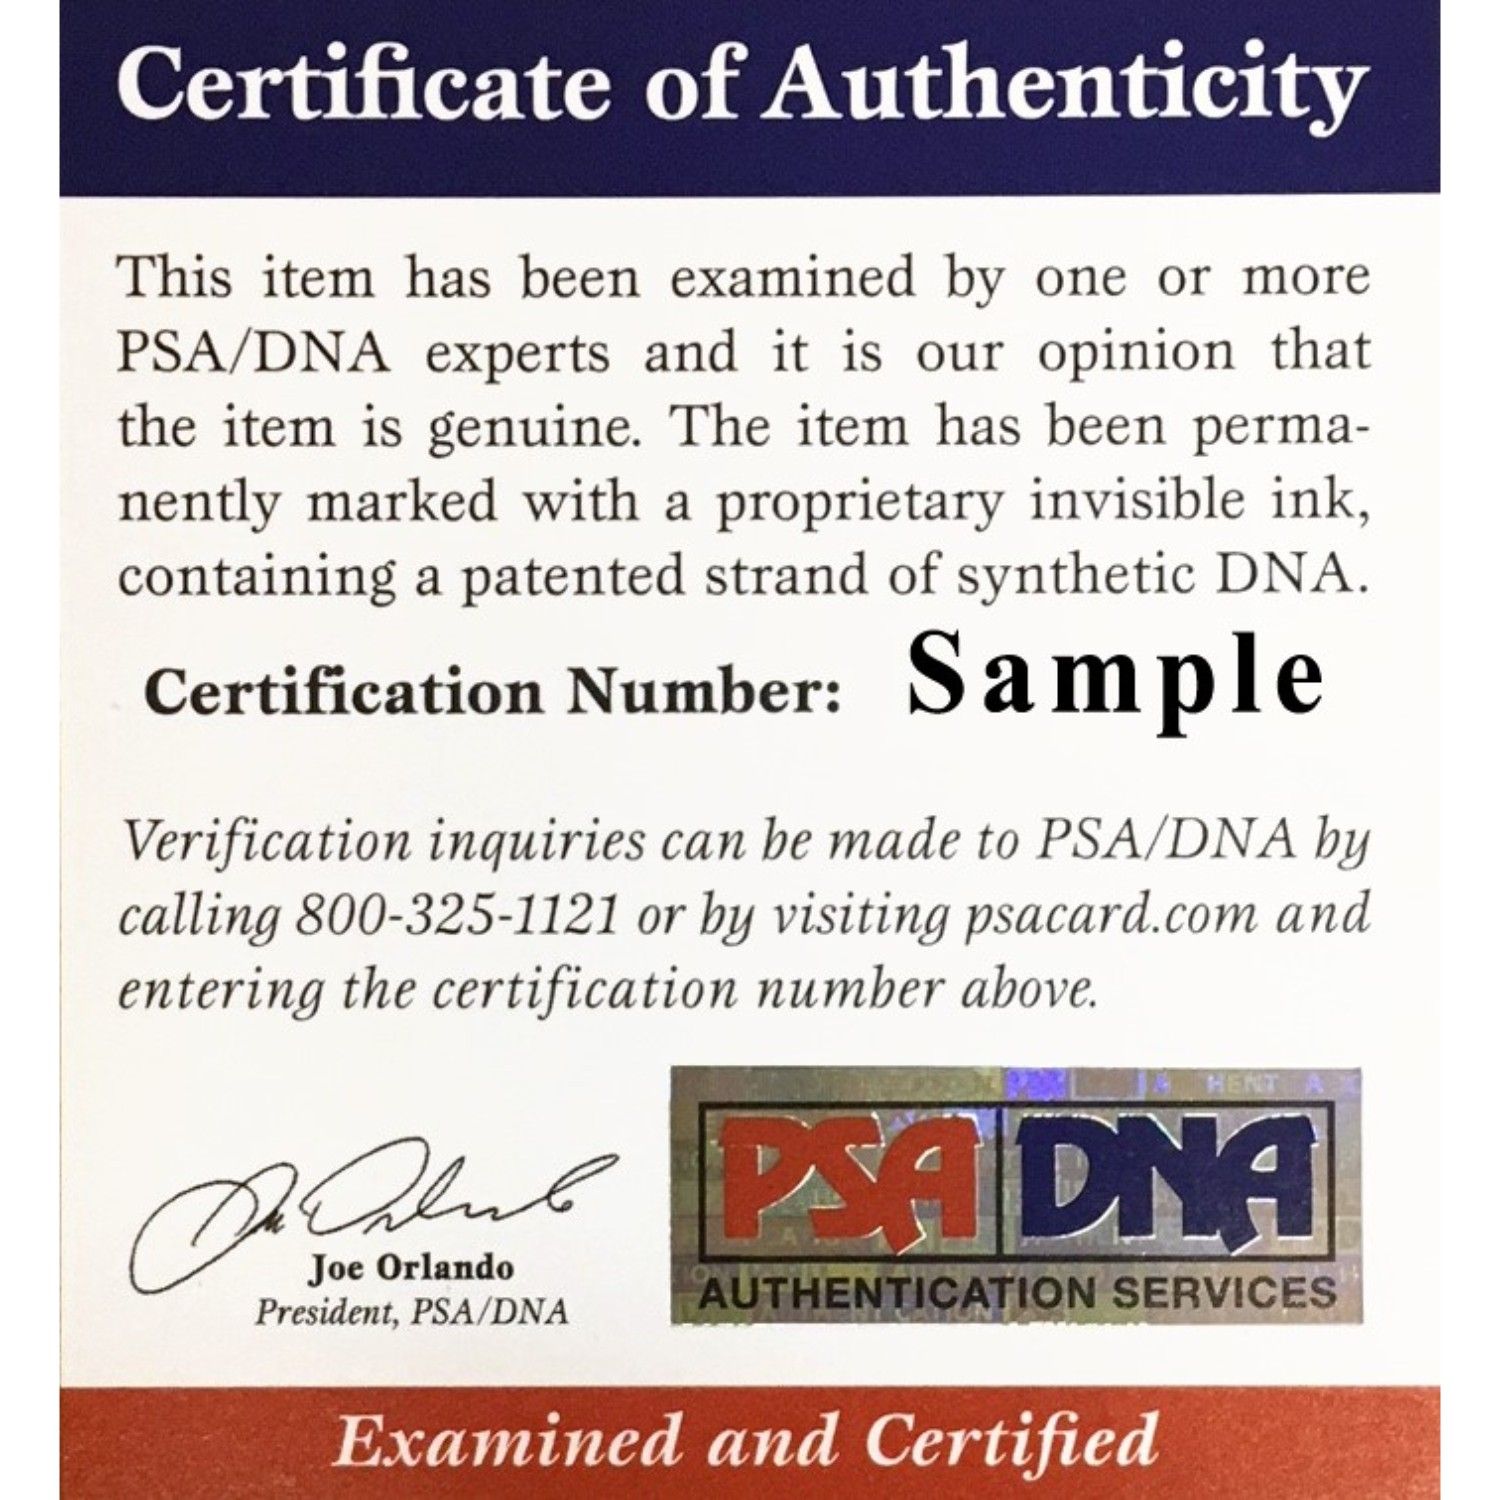 Peyton Manning Denver Broncos Autographed Official NFL Authentic Duke Signed Football PSA DNA COA Future NFL Hall of Famer and former Denver Broncos superstar quarterback Peyton Manning has autographed this officially licensed authentic NFL full size football (same one used in the games)!  Autograph is authenticated by PSA/DNA, the world's leading authenticator of sports autographs. Comes with their unique sticker # fixed to the item and verified on their website. Also, comes with their certificate of authenticity with same matching #. Don't miss out on this item at this price!